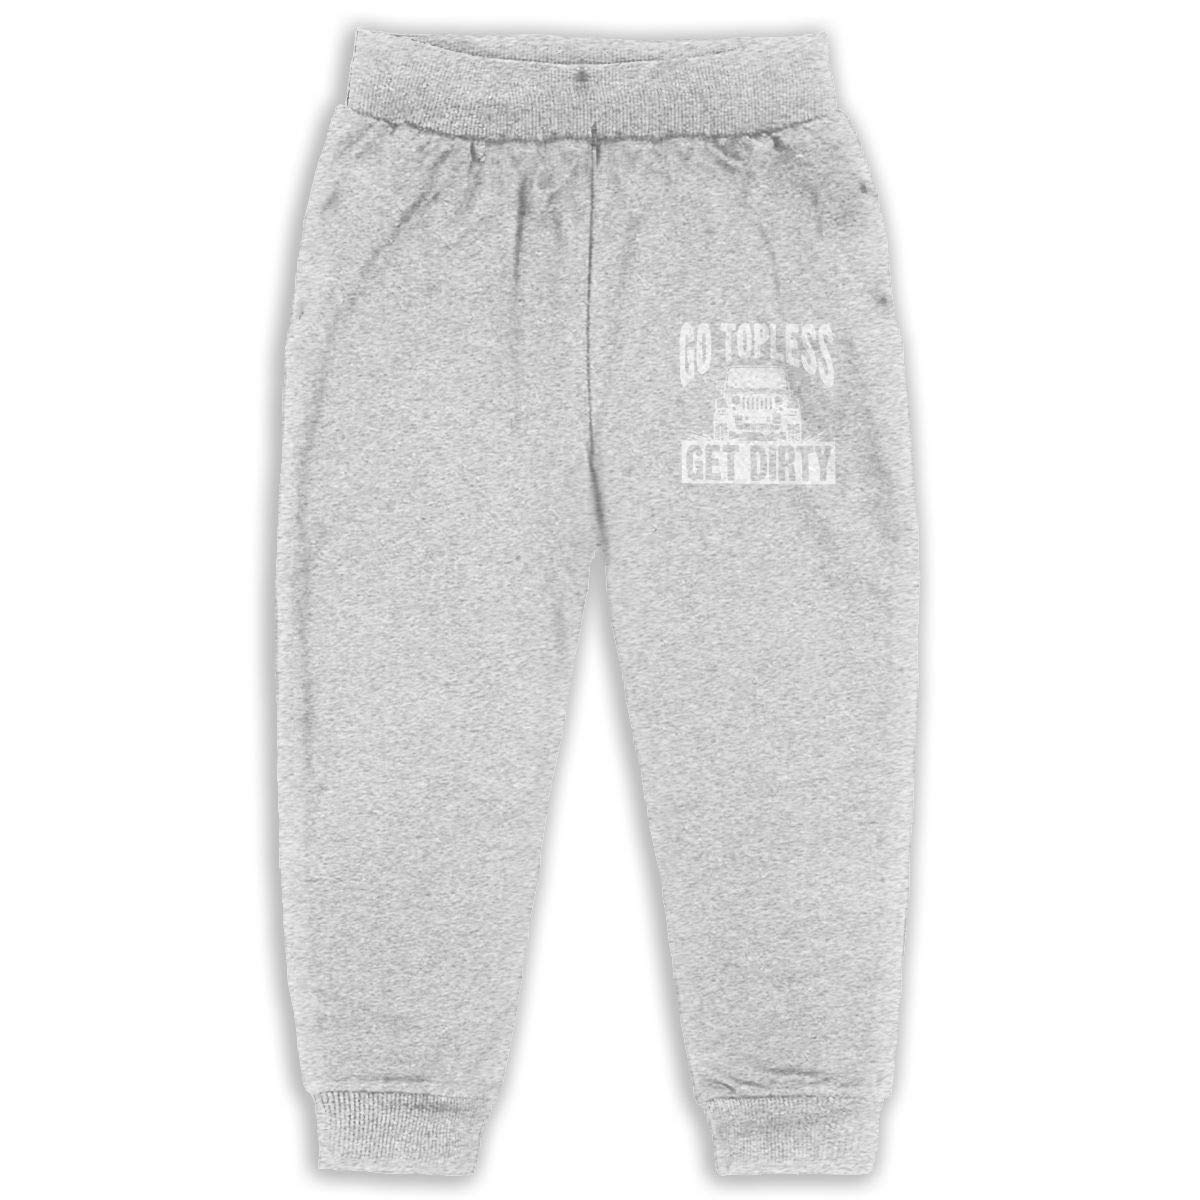 Laoyaotequ Go Topless Get Dirty Kids Cotton Sweatpants,Jogger Long Jersey Sweatpants